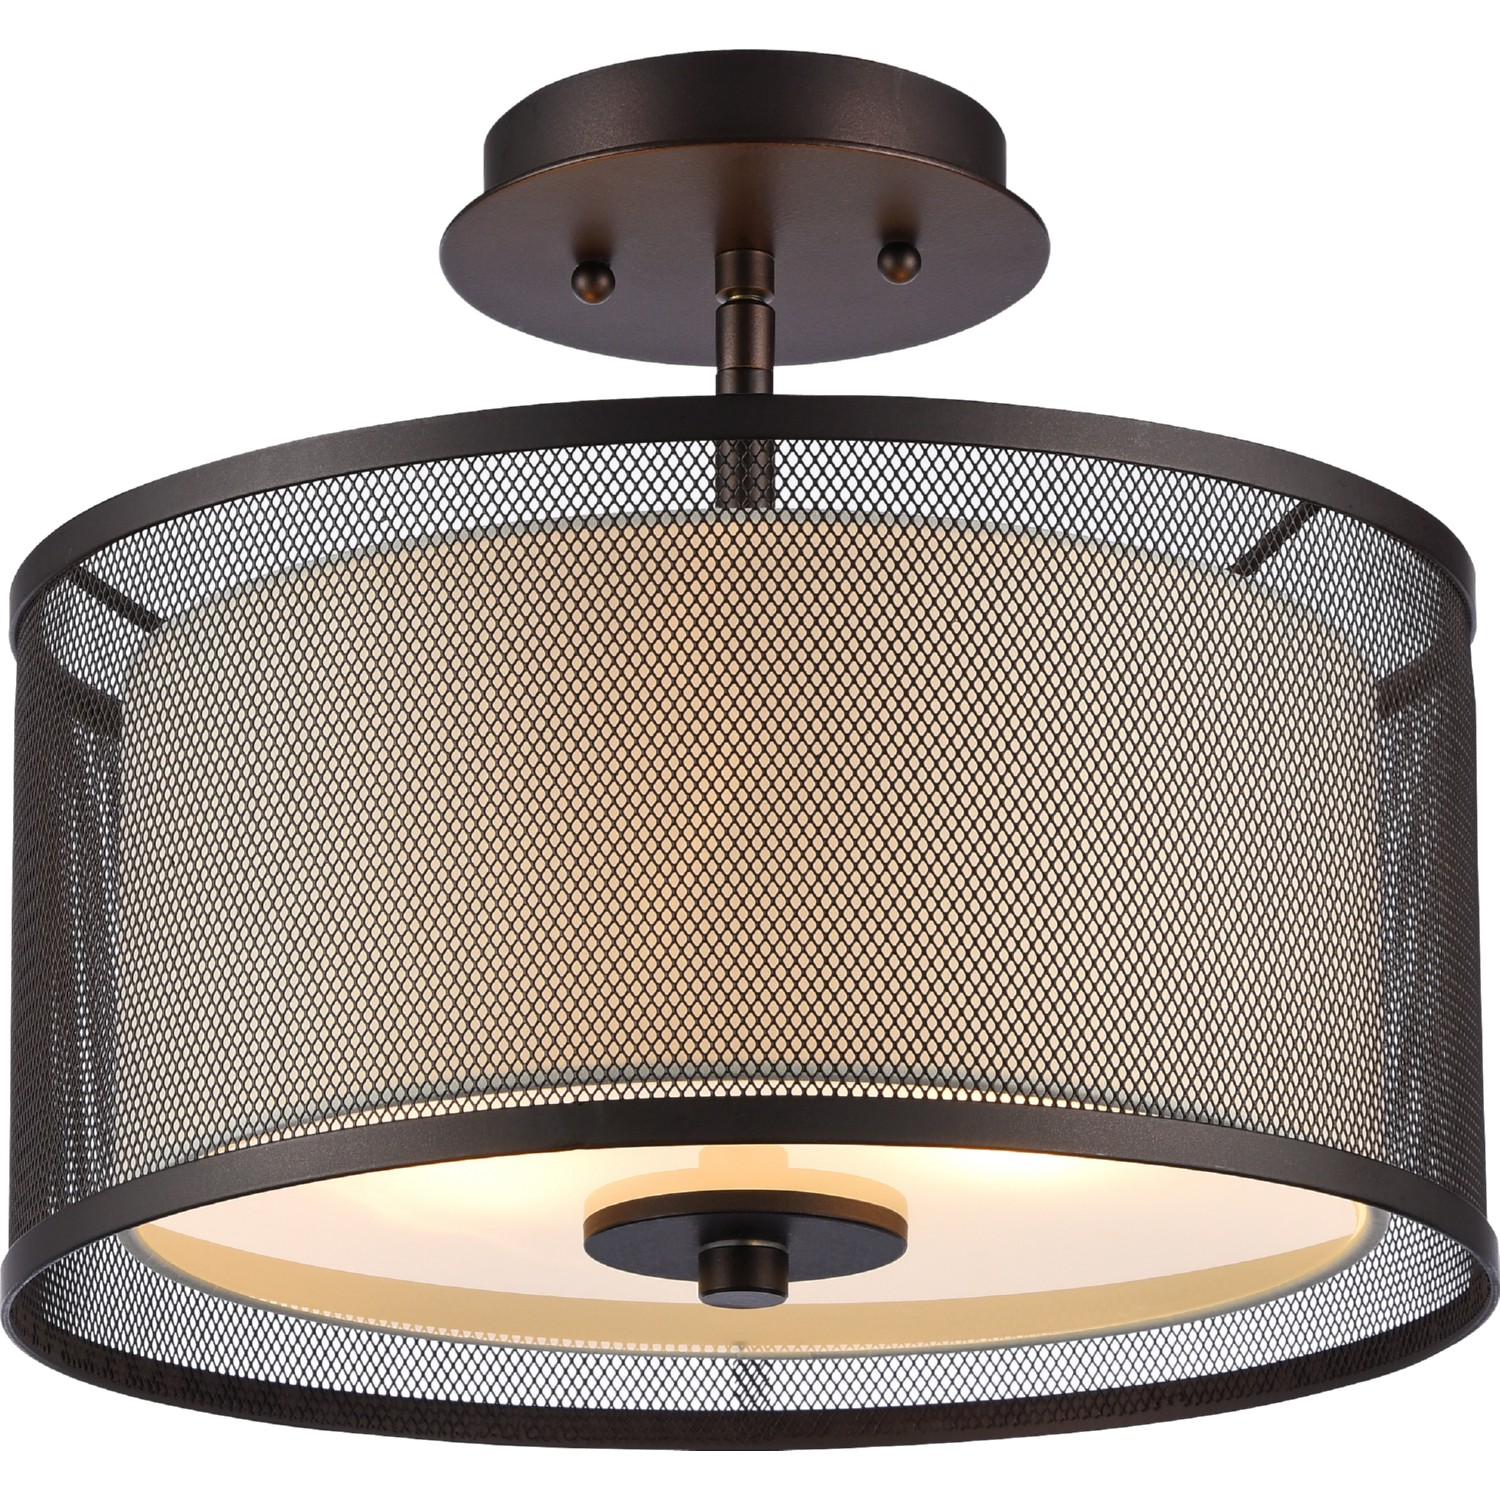 Chloe lighting ch24033rb13 sf2 audrey transitional 2 light rubbed chloe lighting audrey transitional 2 light rubbed bronze semi flush ceiling light 13w arubaitofo Images